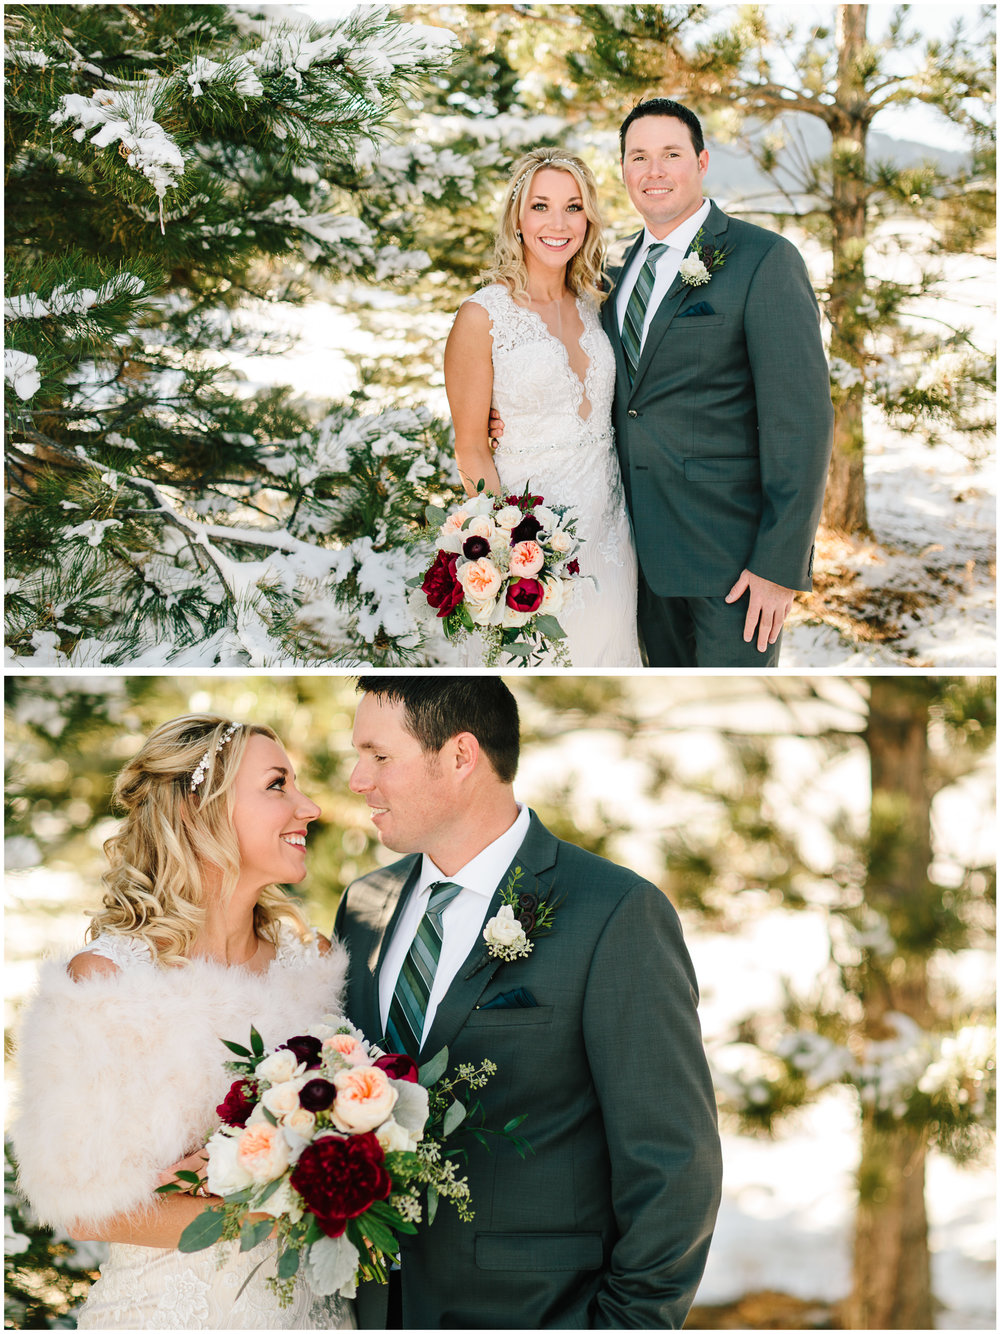 spruce_mountain_ranch_wedding_24.jpg